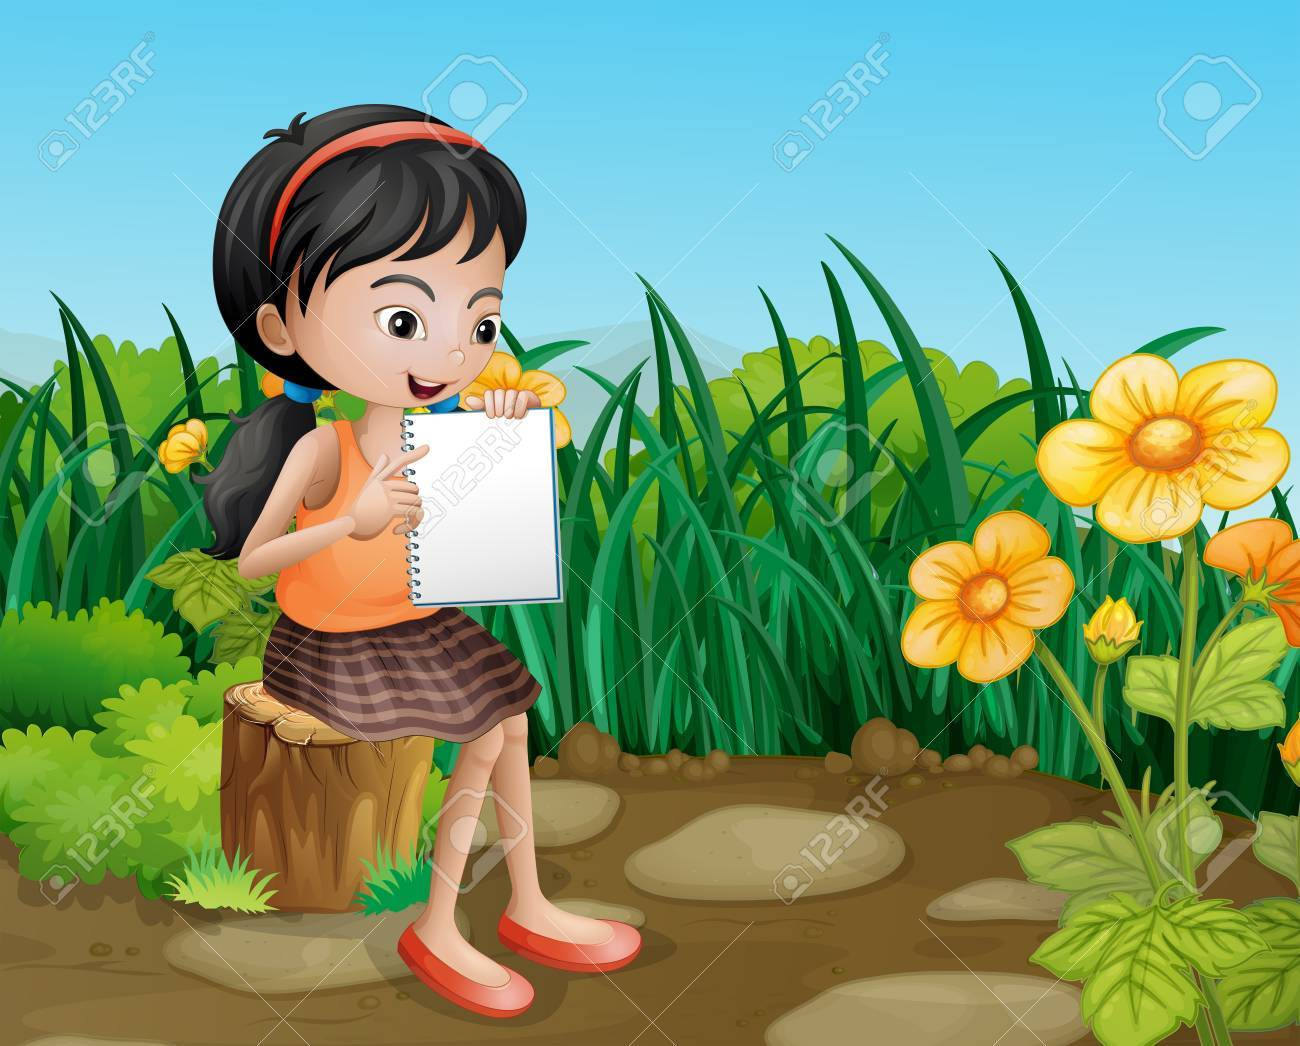 Illustration of a girl studying at the garden Stock Vector - 22065656